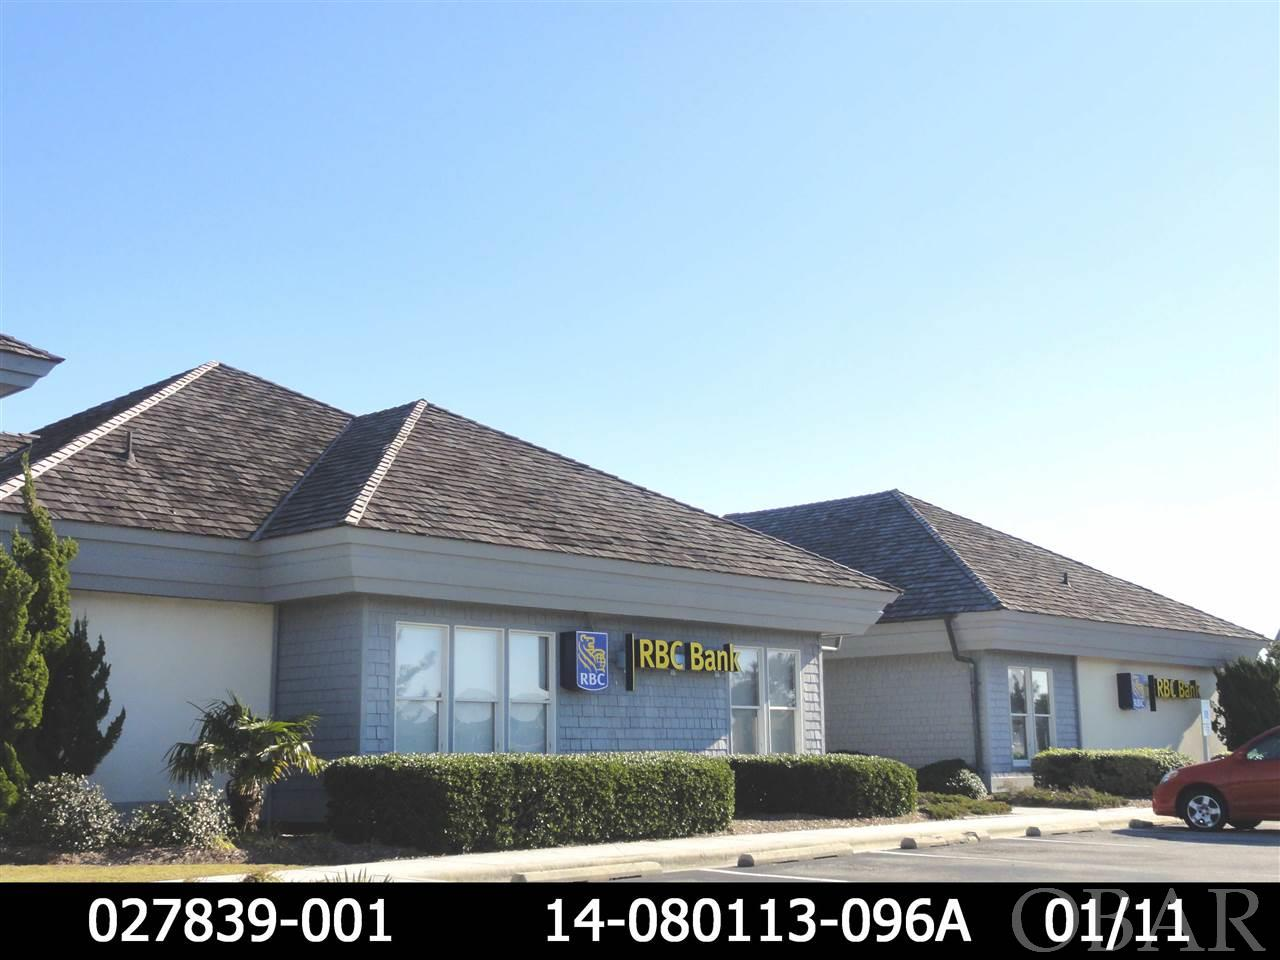 103 Mall Drive, Nags Head, NC 27959, ,Commercial/industrial,For sale,Mall Drive,103170